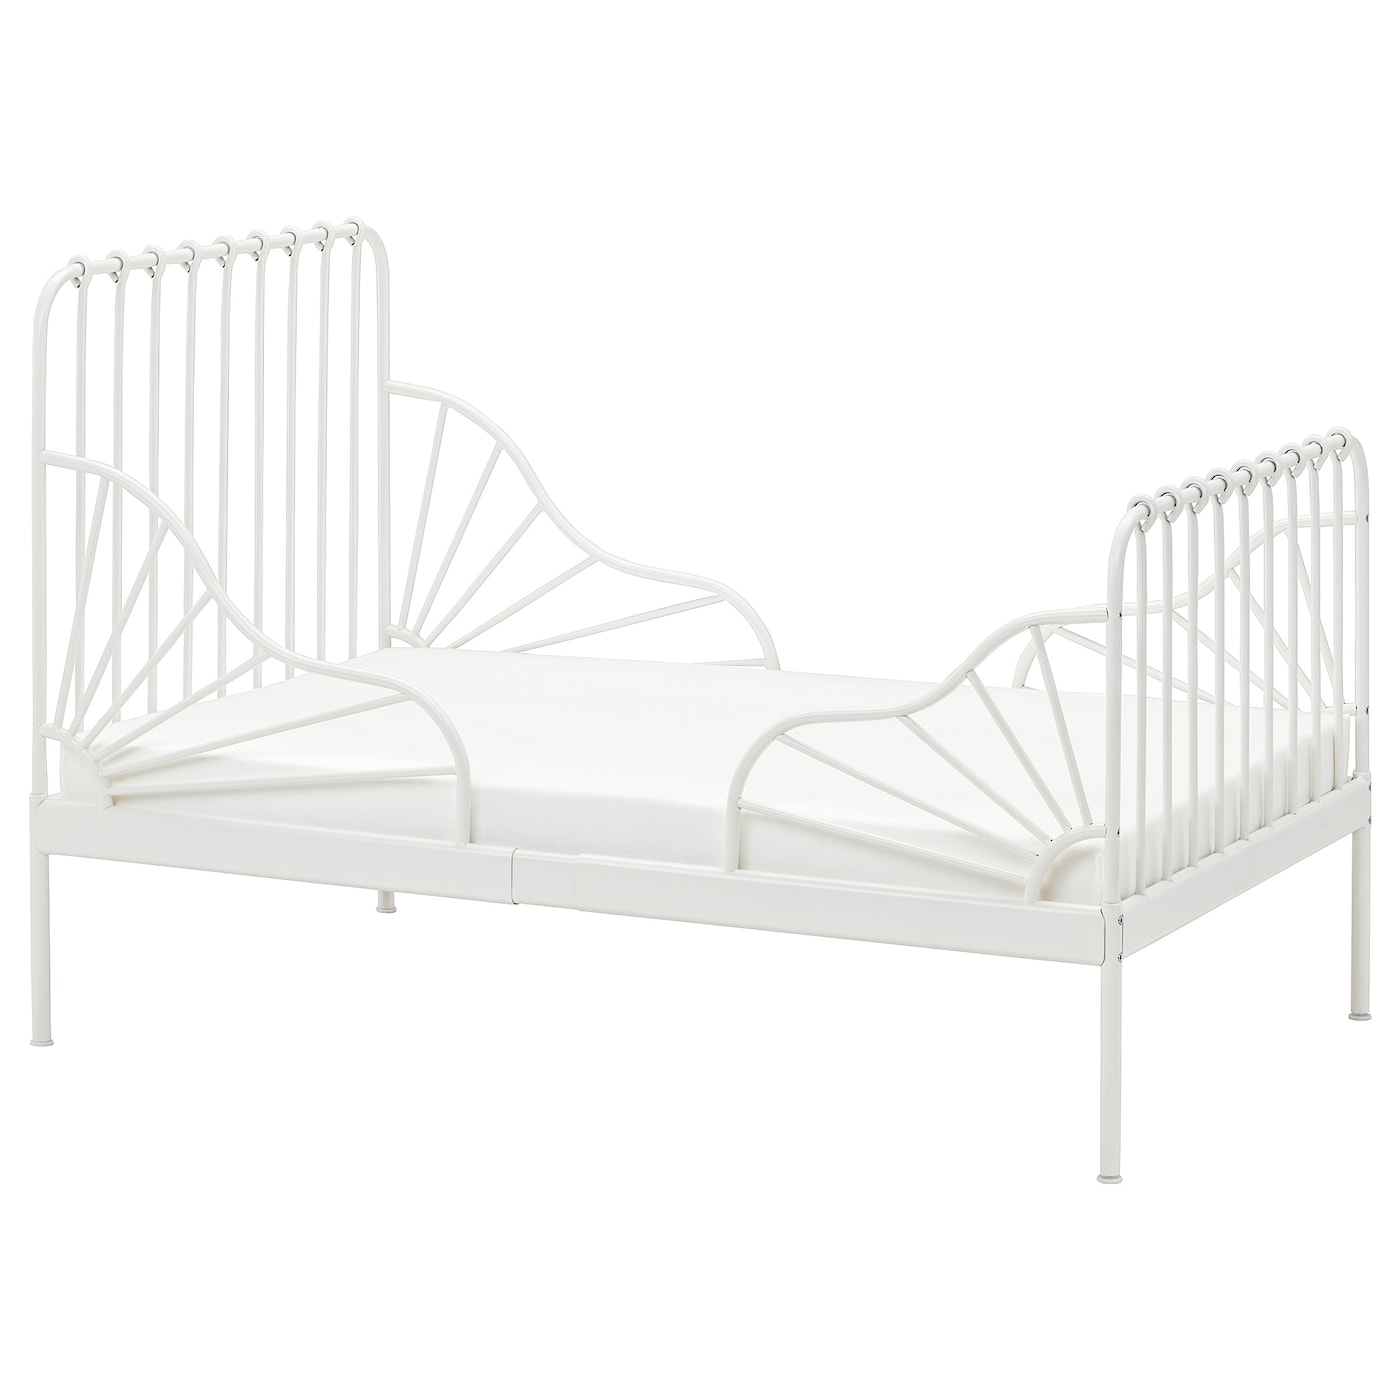 Toddler Beds - Children\'s/Kids Beds - IKEA